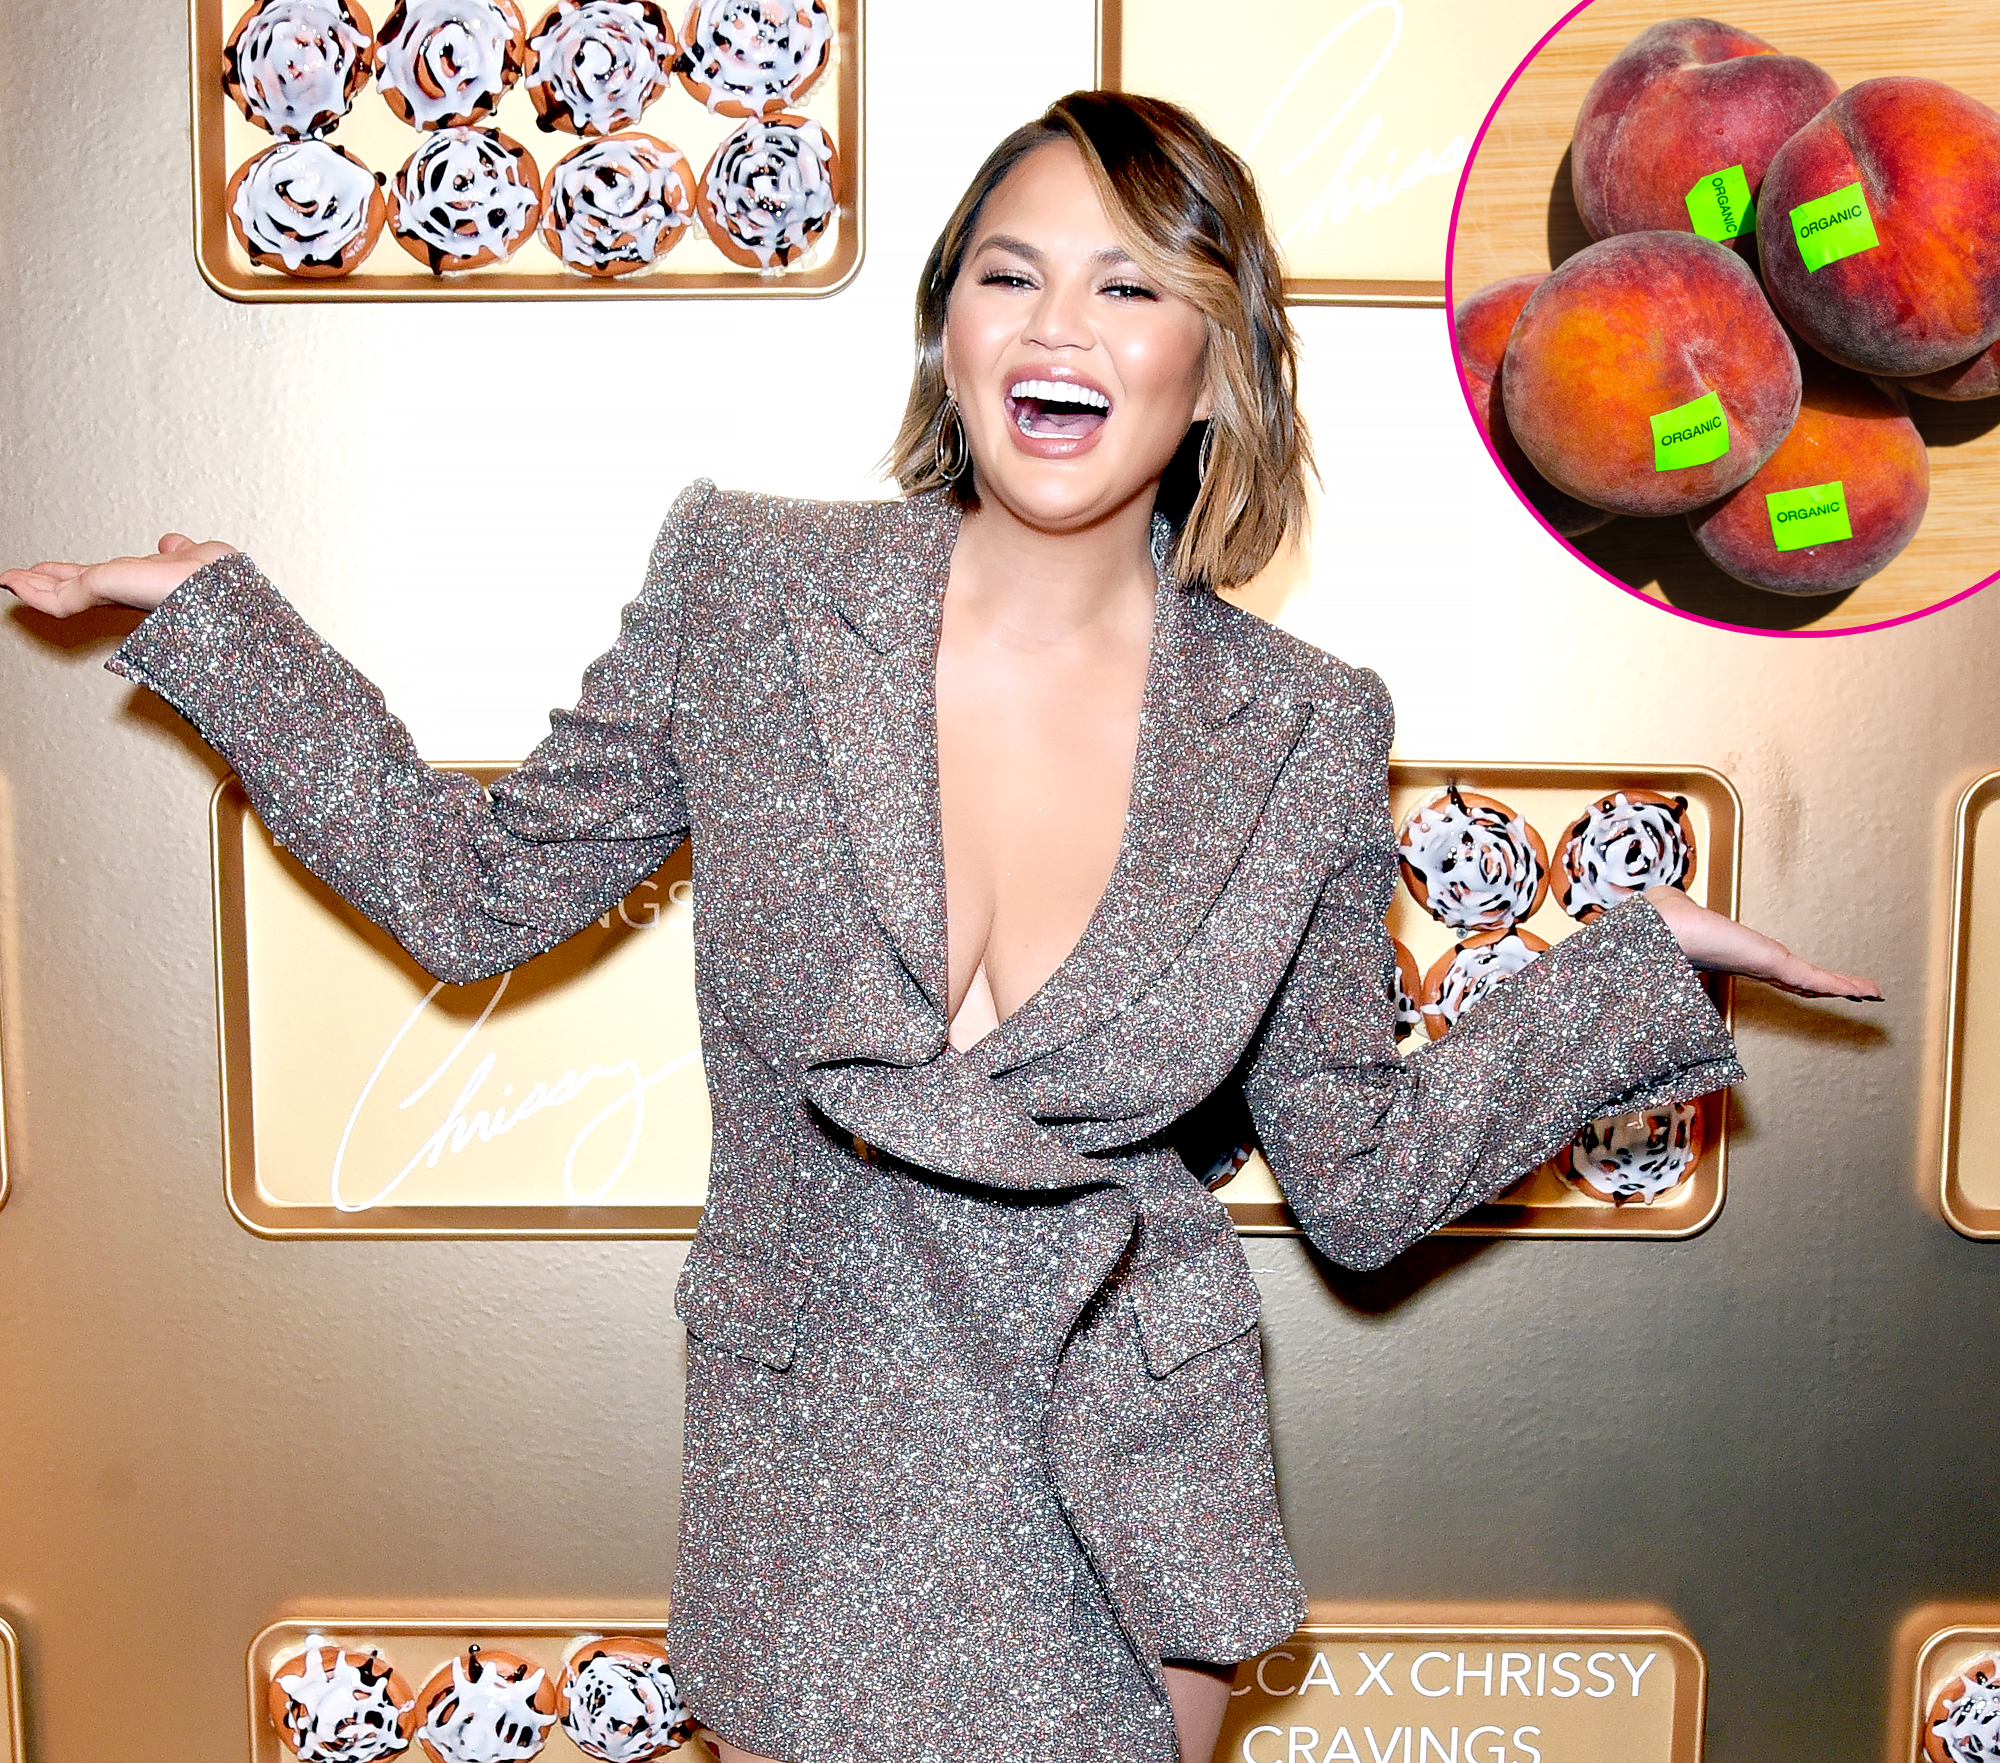 """Chrissy-Teigen-Ate-a-Produce-Sticker - After the Lip Sync Battle cohost took to Instagram in August 2018 to share her """"genius idea"""" that produce stickers should be edible, Twitter was somehow able to convince her that was already the case. The cookbook author was then duped into purposefully eat one of the colorful labels, but luckily she didn't lose her sense of humor."""